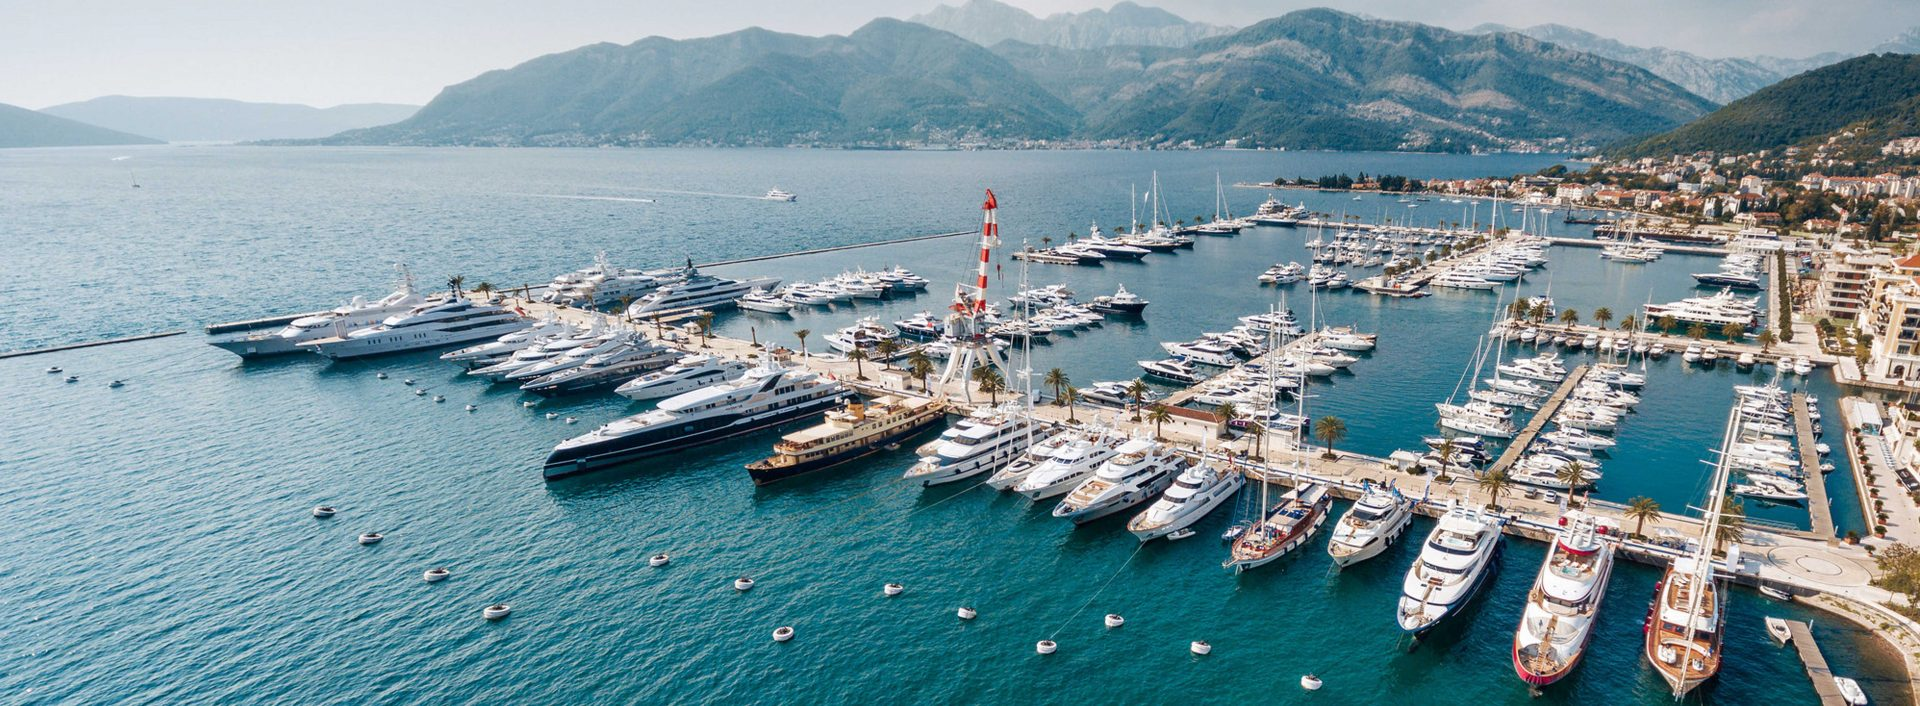 All you need to know about Porto Montenegro